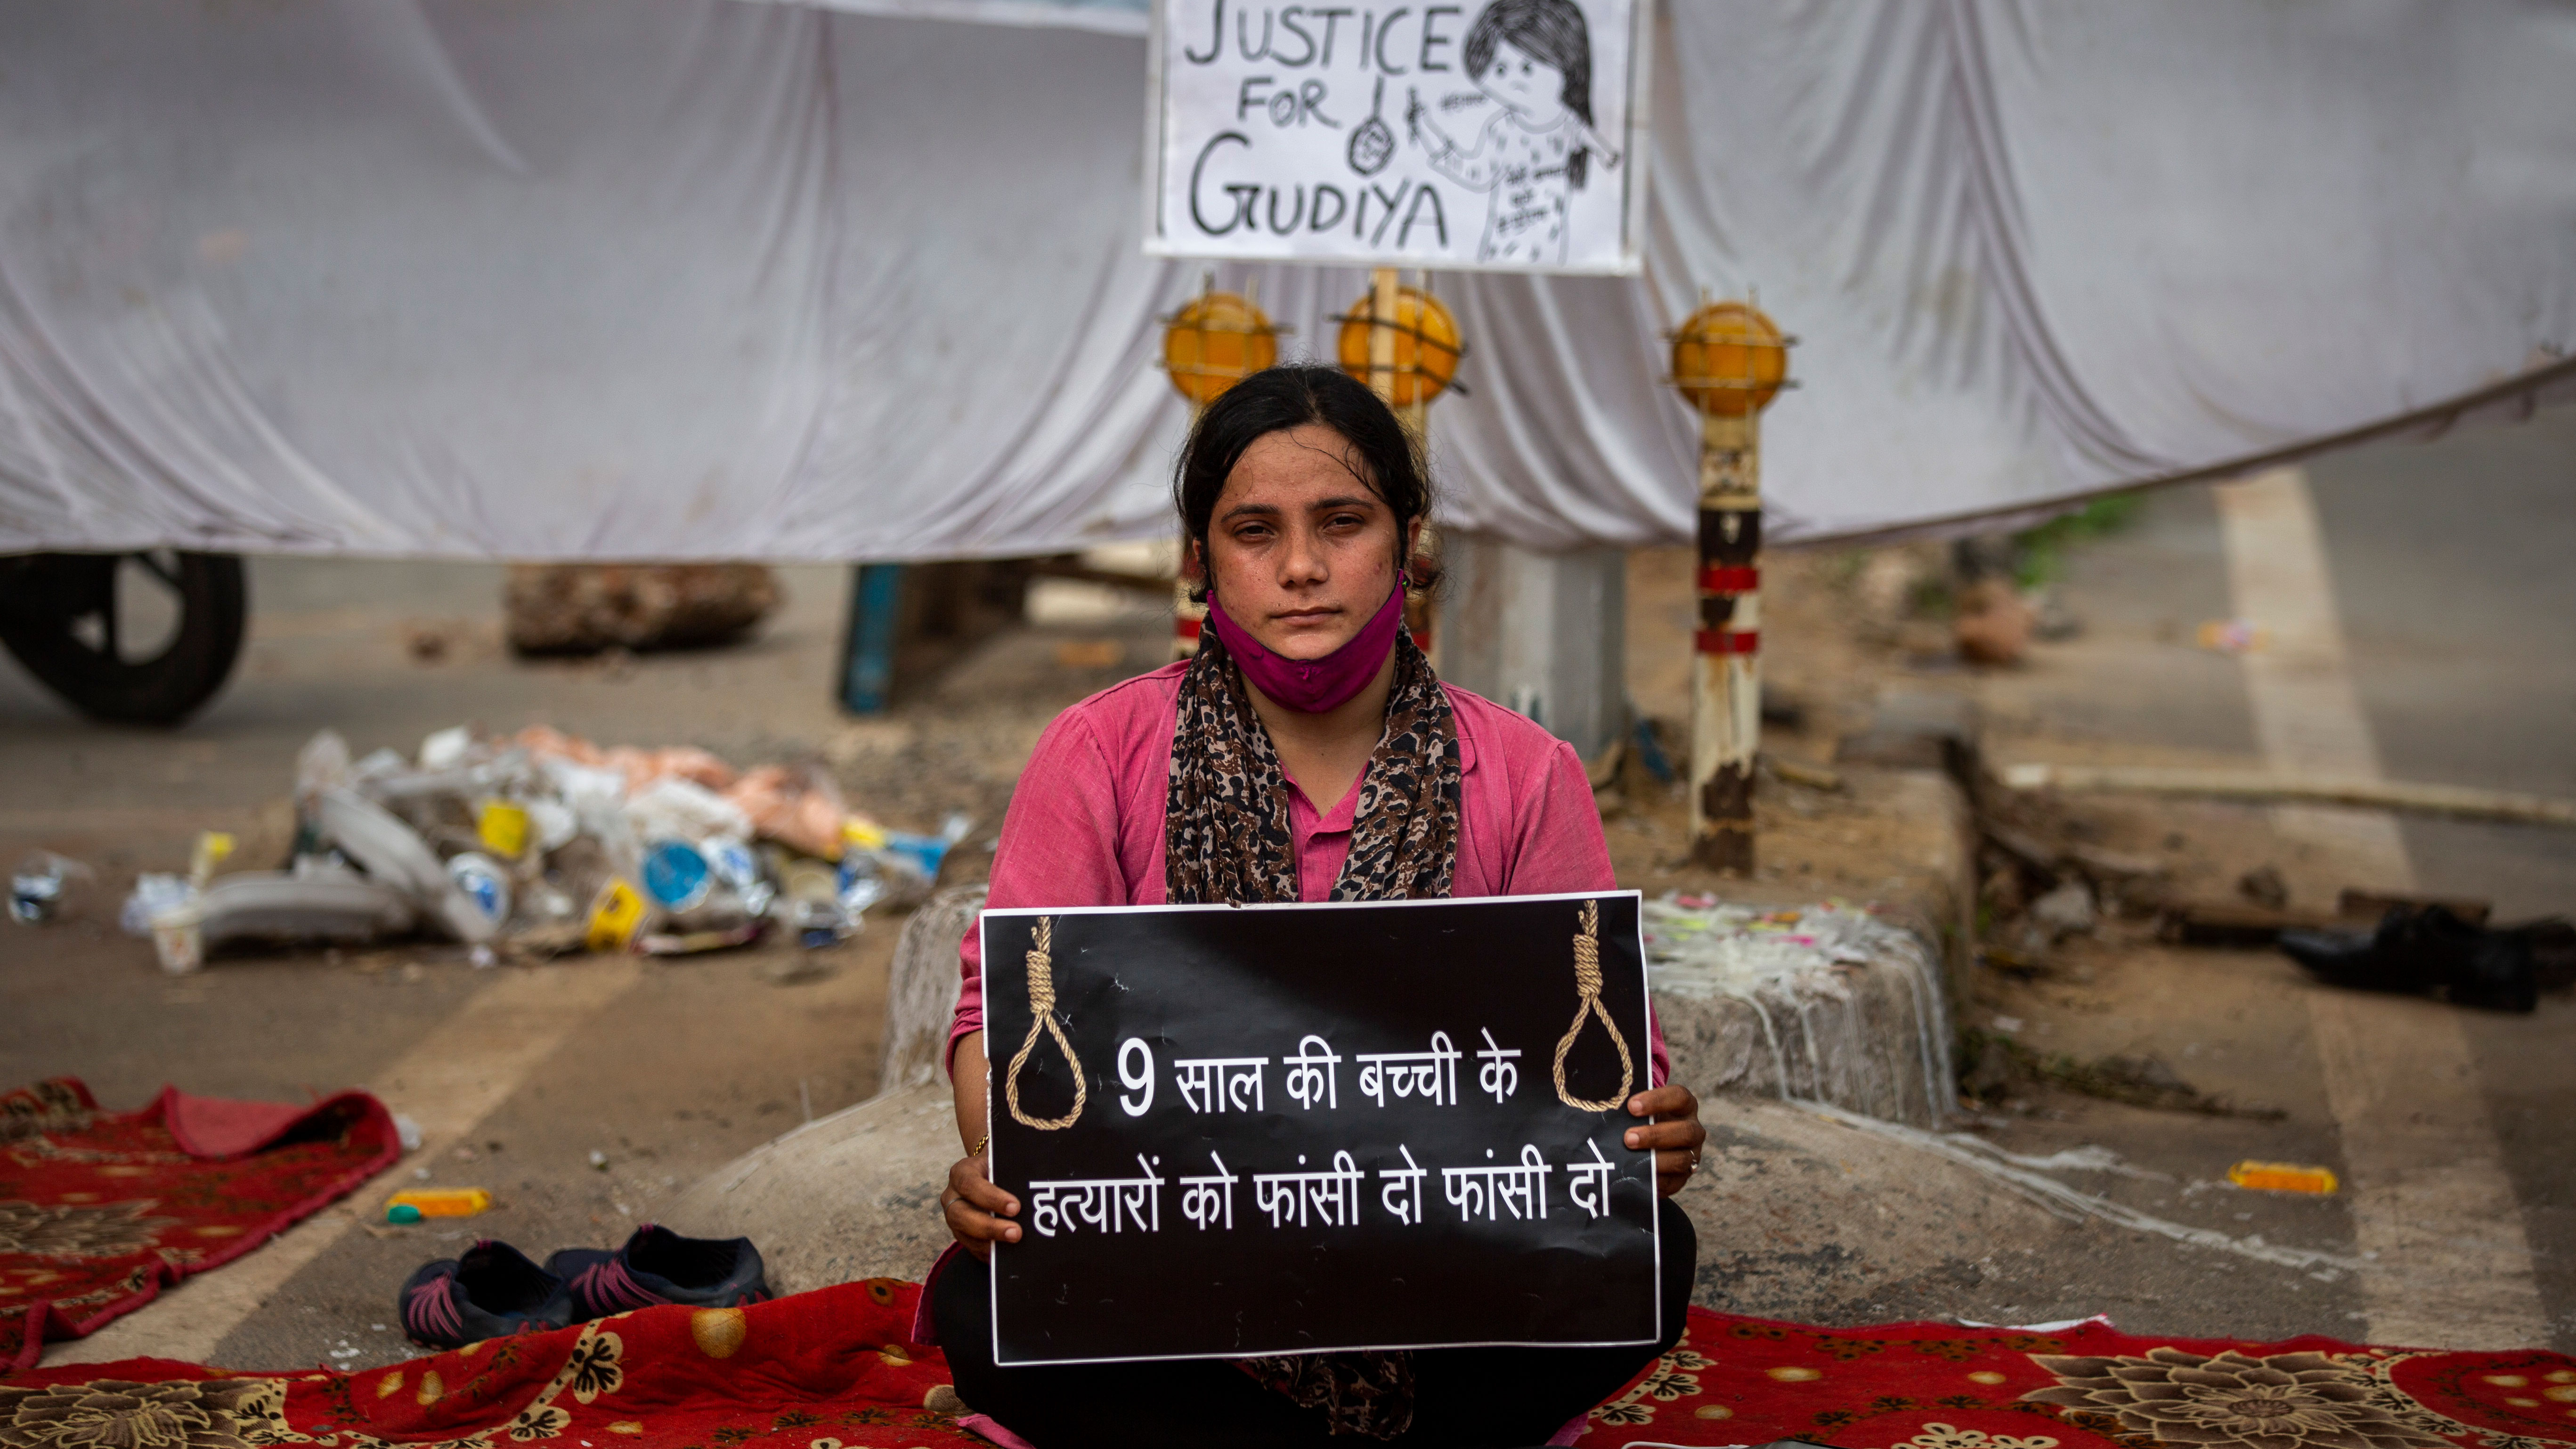 """Tina Verma, 27, a social activist, holds a placard which reads, """"Hang the killers of 9-year old child""""."""